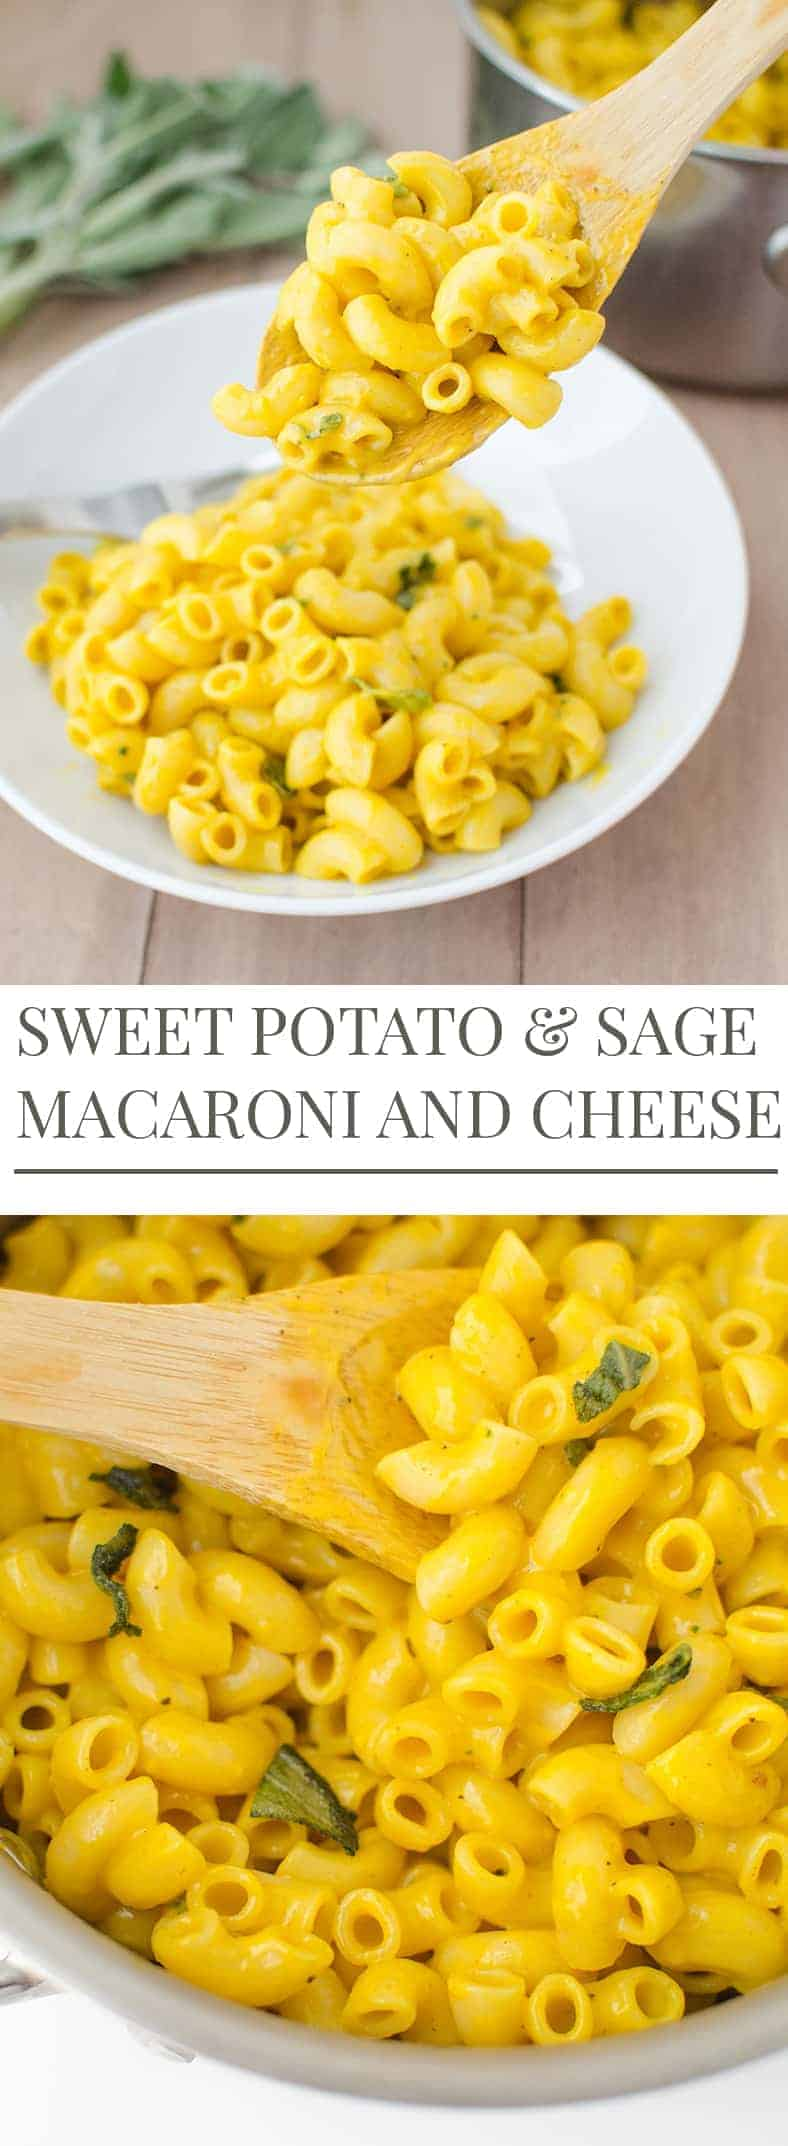 Sweet Potato & Sage Mac and Cheese. A big bowl contains only 380 calories, 8 grams of fat, 10g of fiber and 14 grams protein. Not bad for a bowl of hearty mac and cheese! Cheesy, savory, and ready in 30 minutes or less. | www.delishknowledge.com